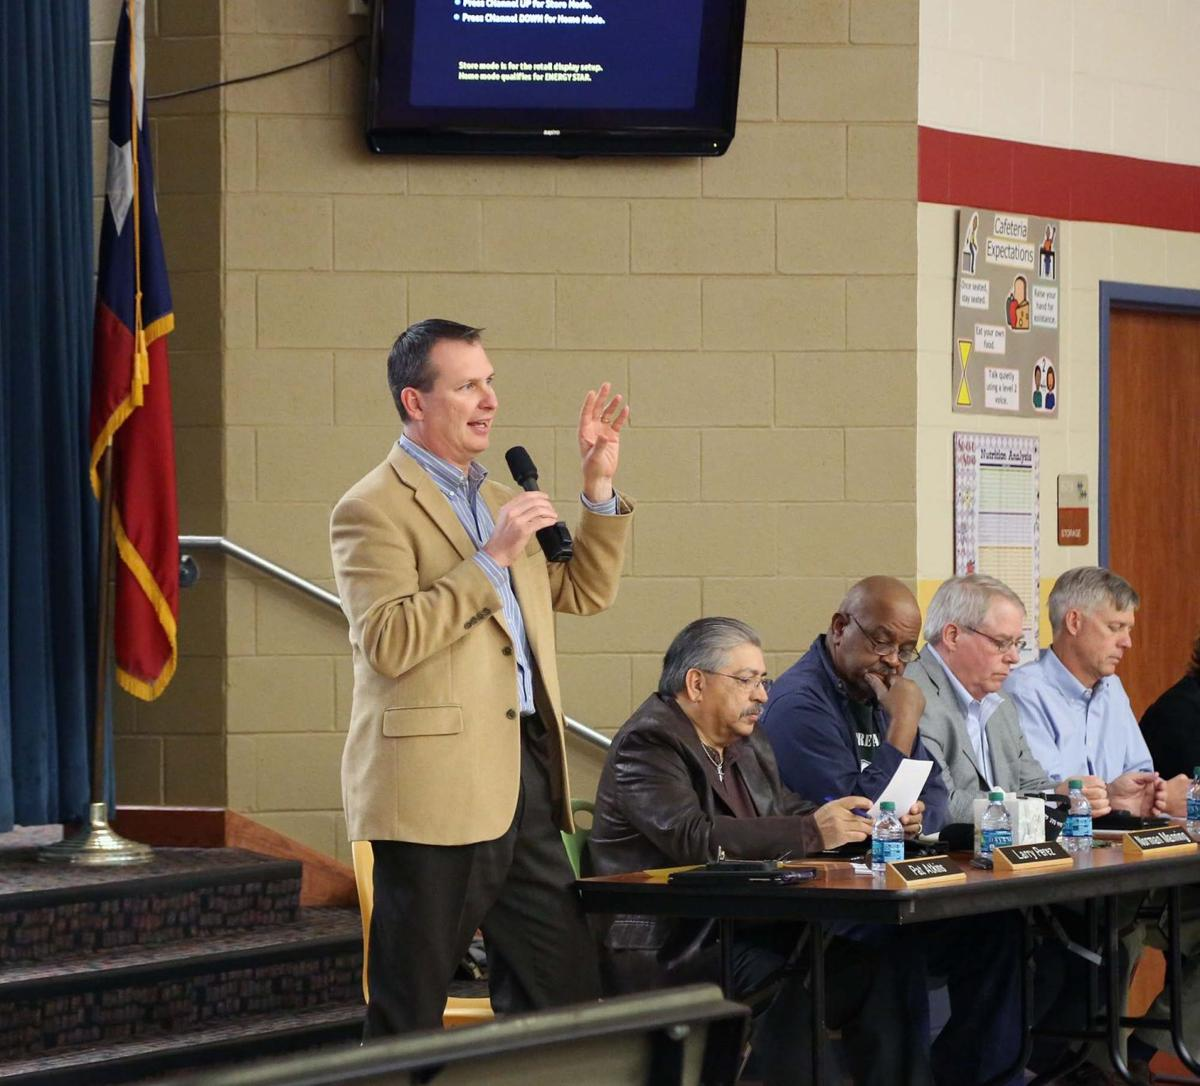 Schools Education3 18 19south Haven: Waco ISD Parents Concerned Over Middle School Rezoning